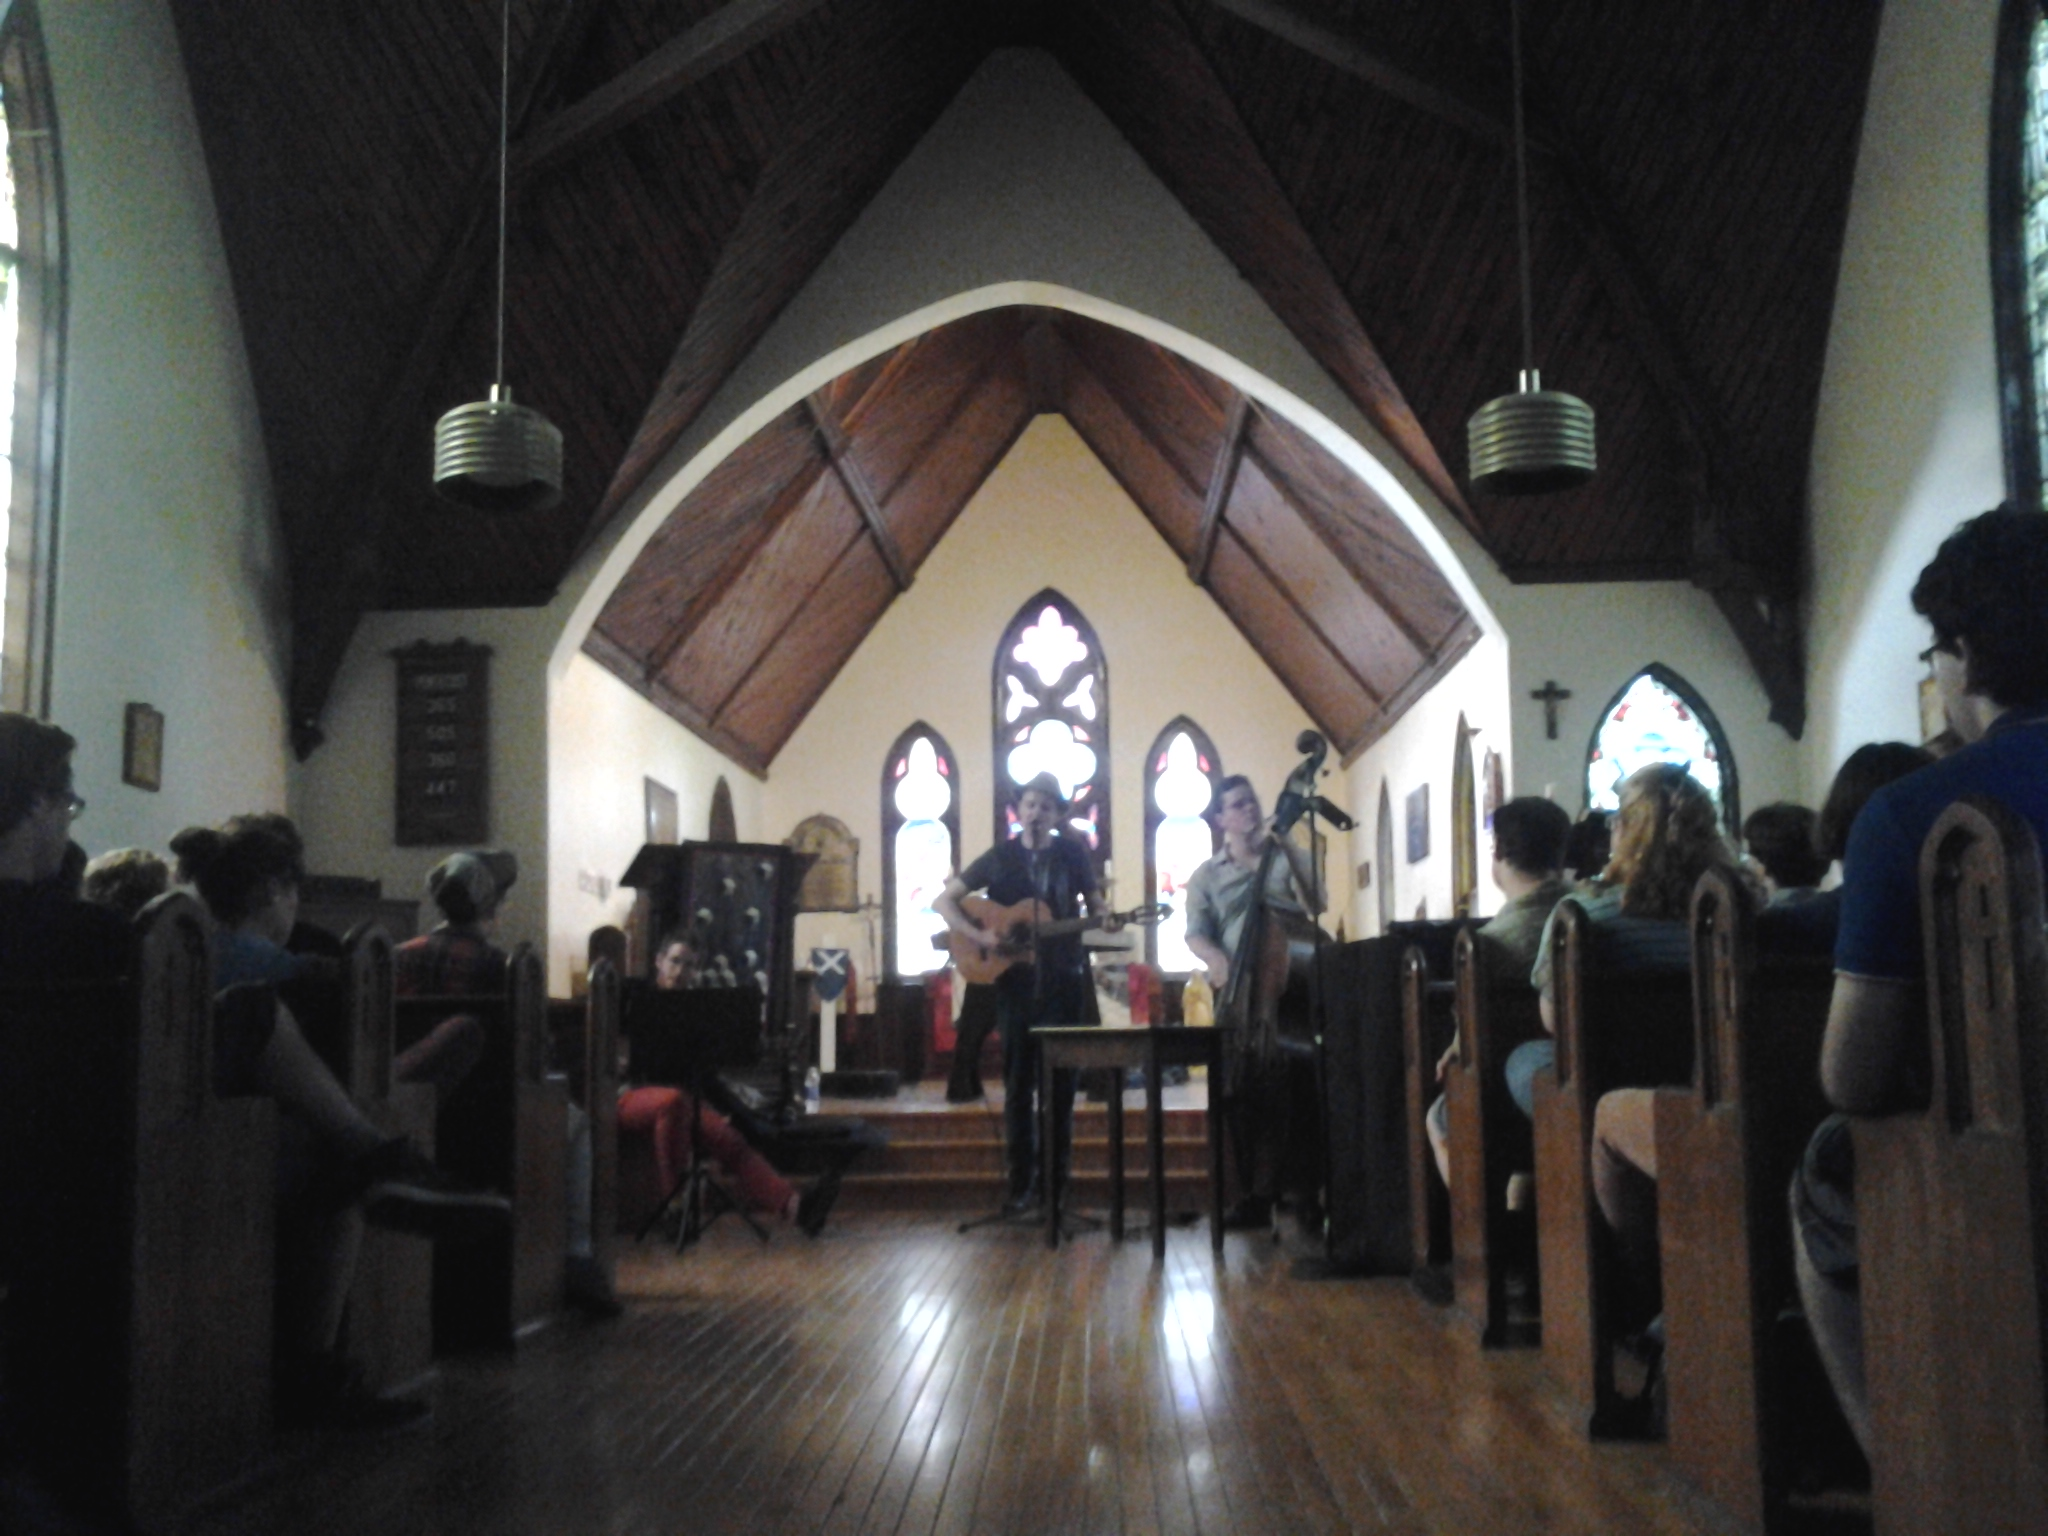 John Southworth playing in St. Andrew's Church, Poor Pilgrim Island Show 2014.